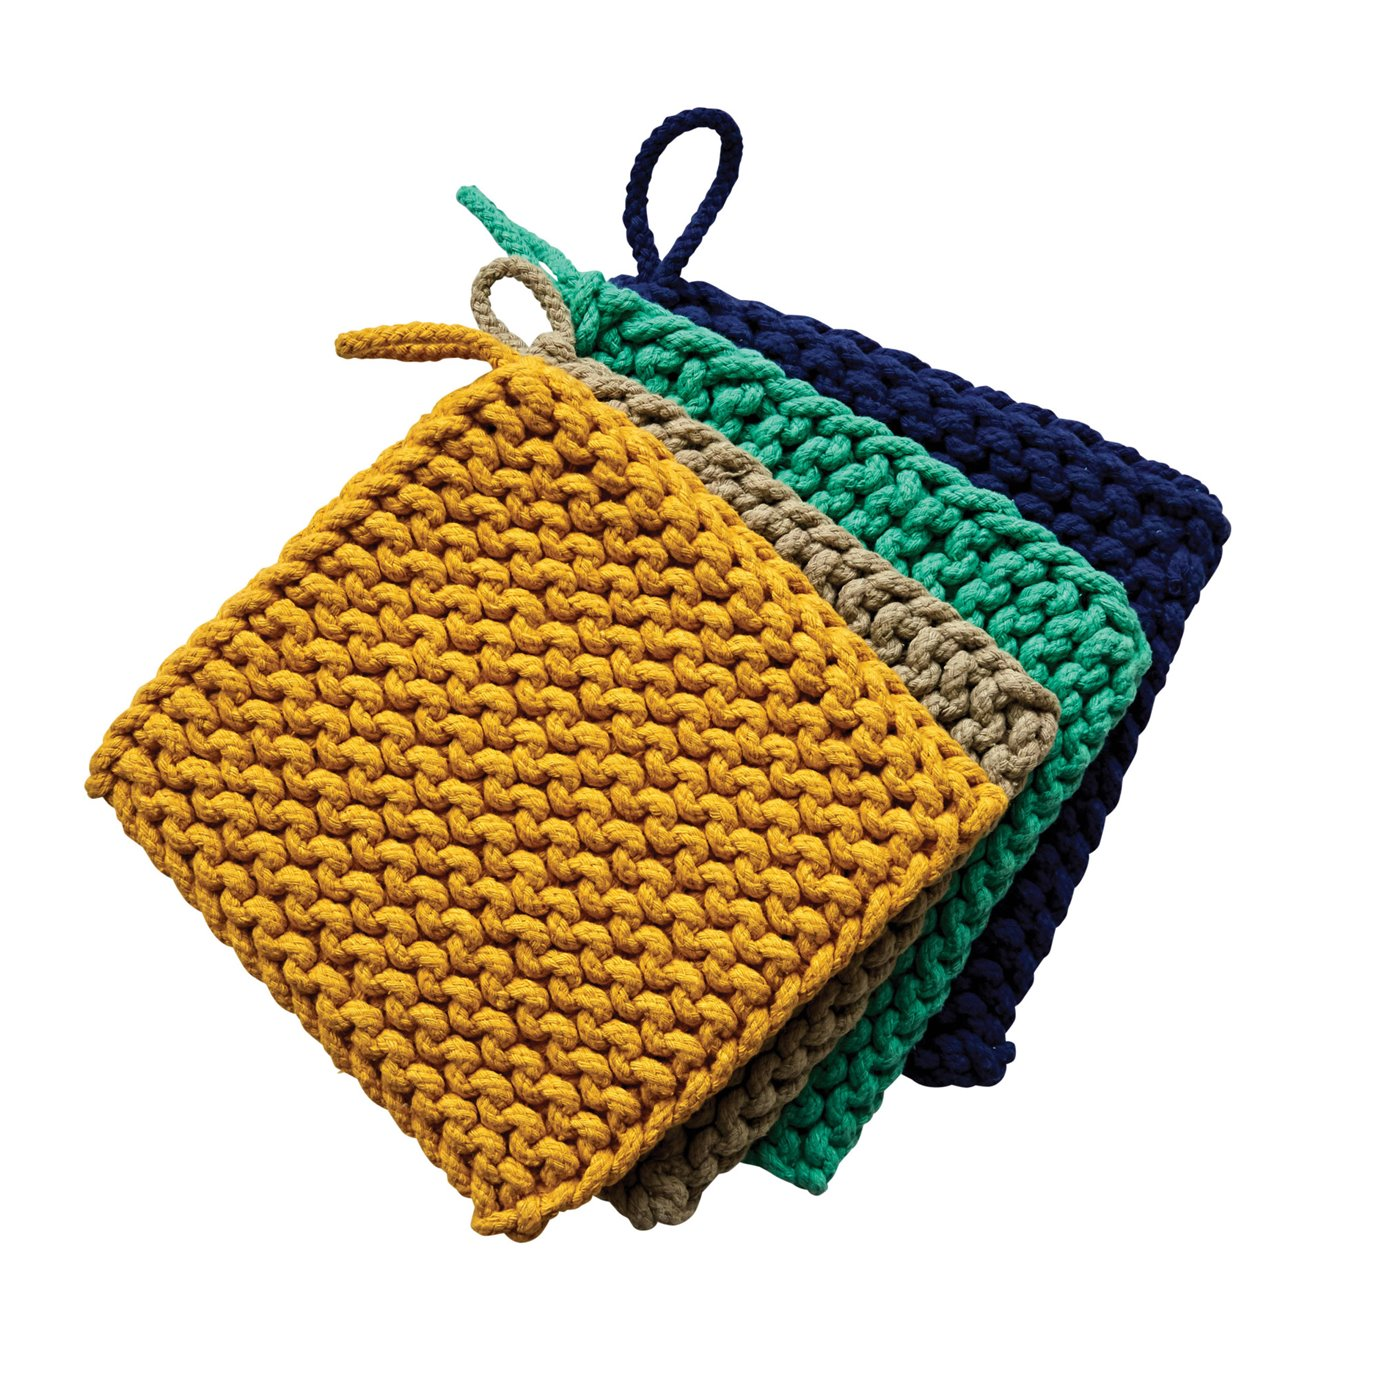 Square Cotton Crocheted Pot Holders (Set of 4 Colors)